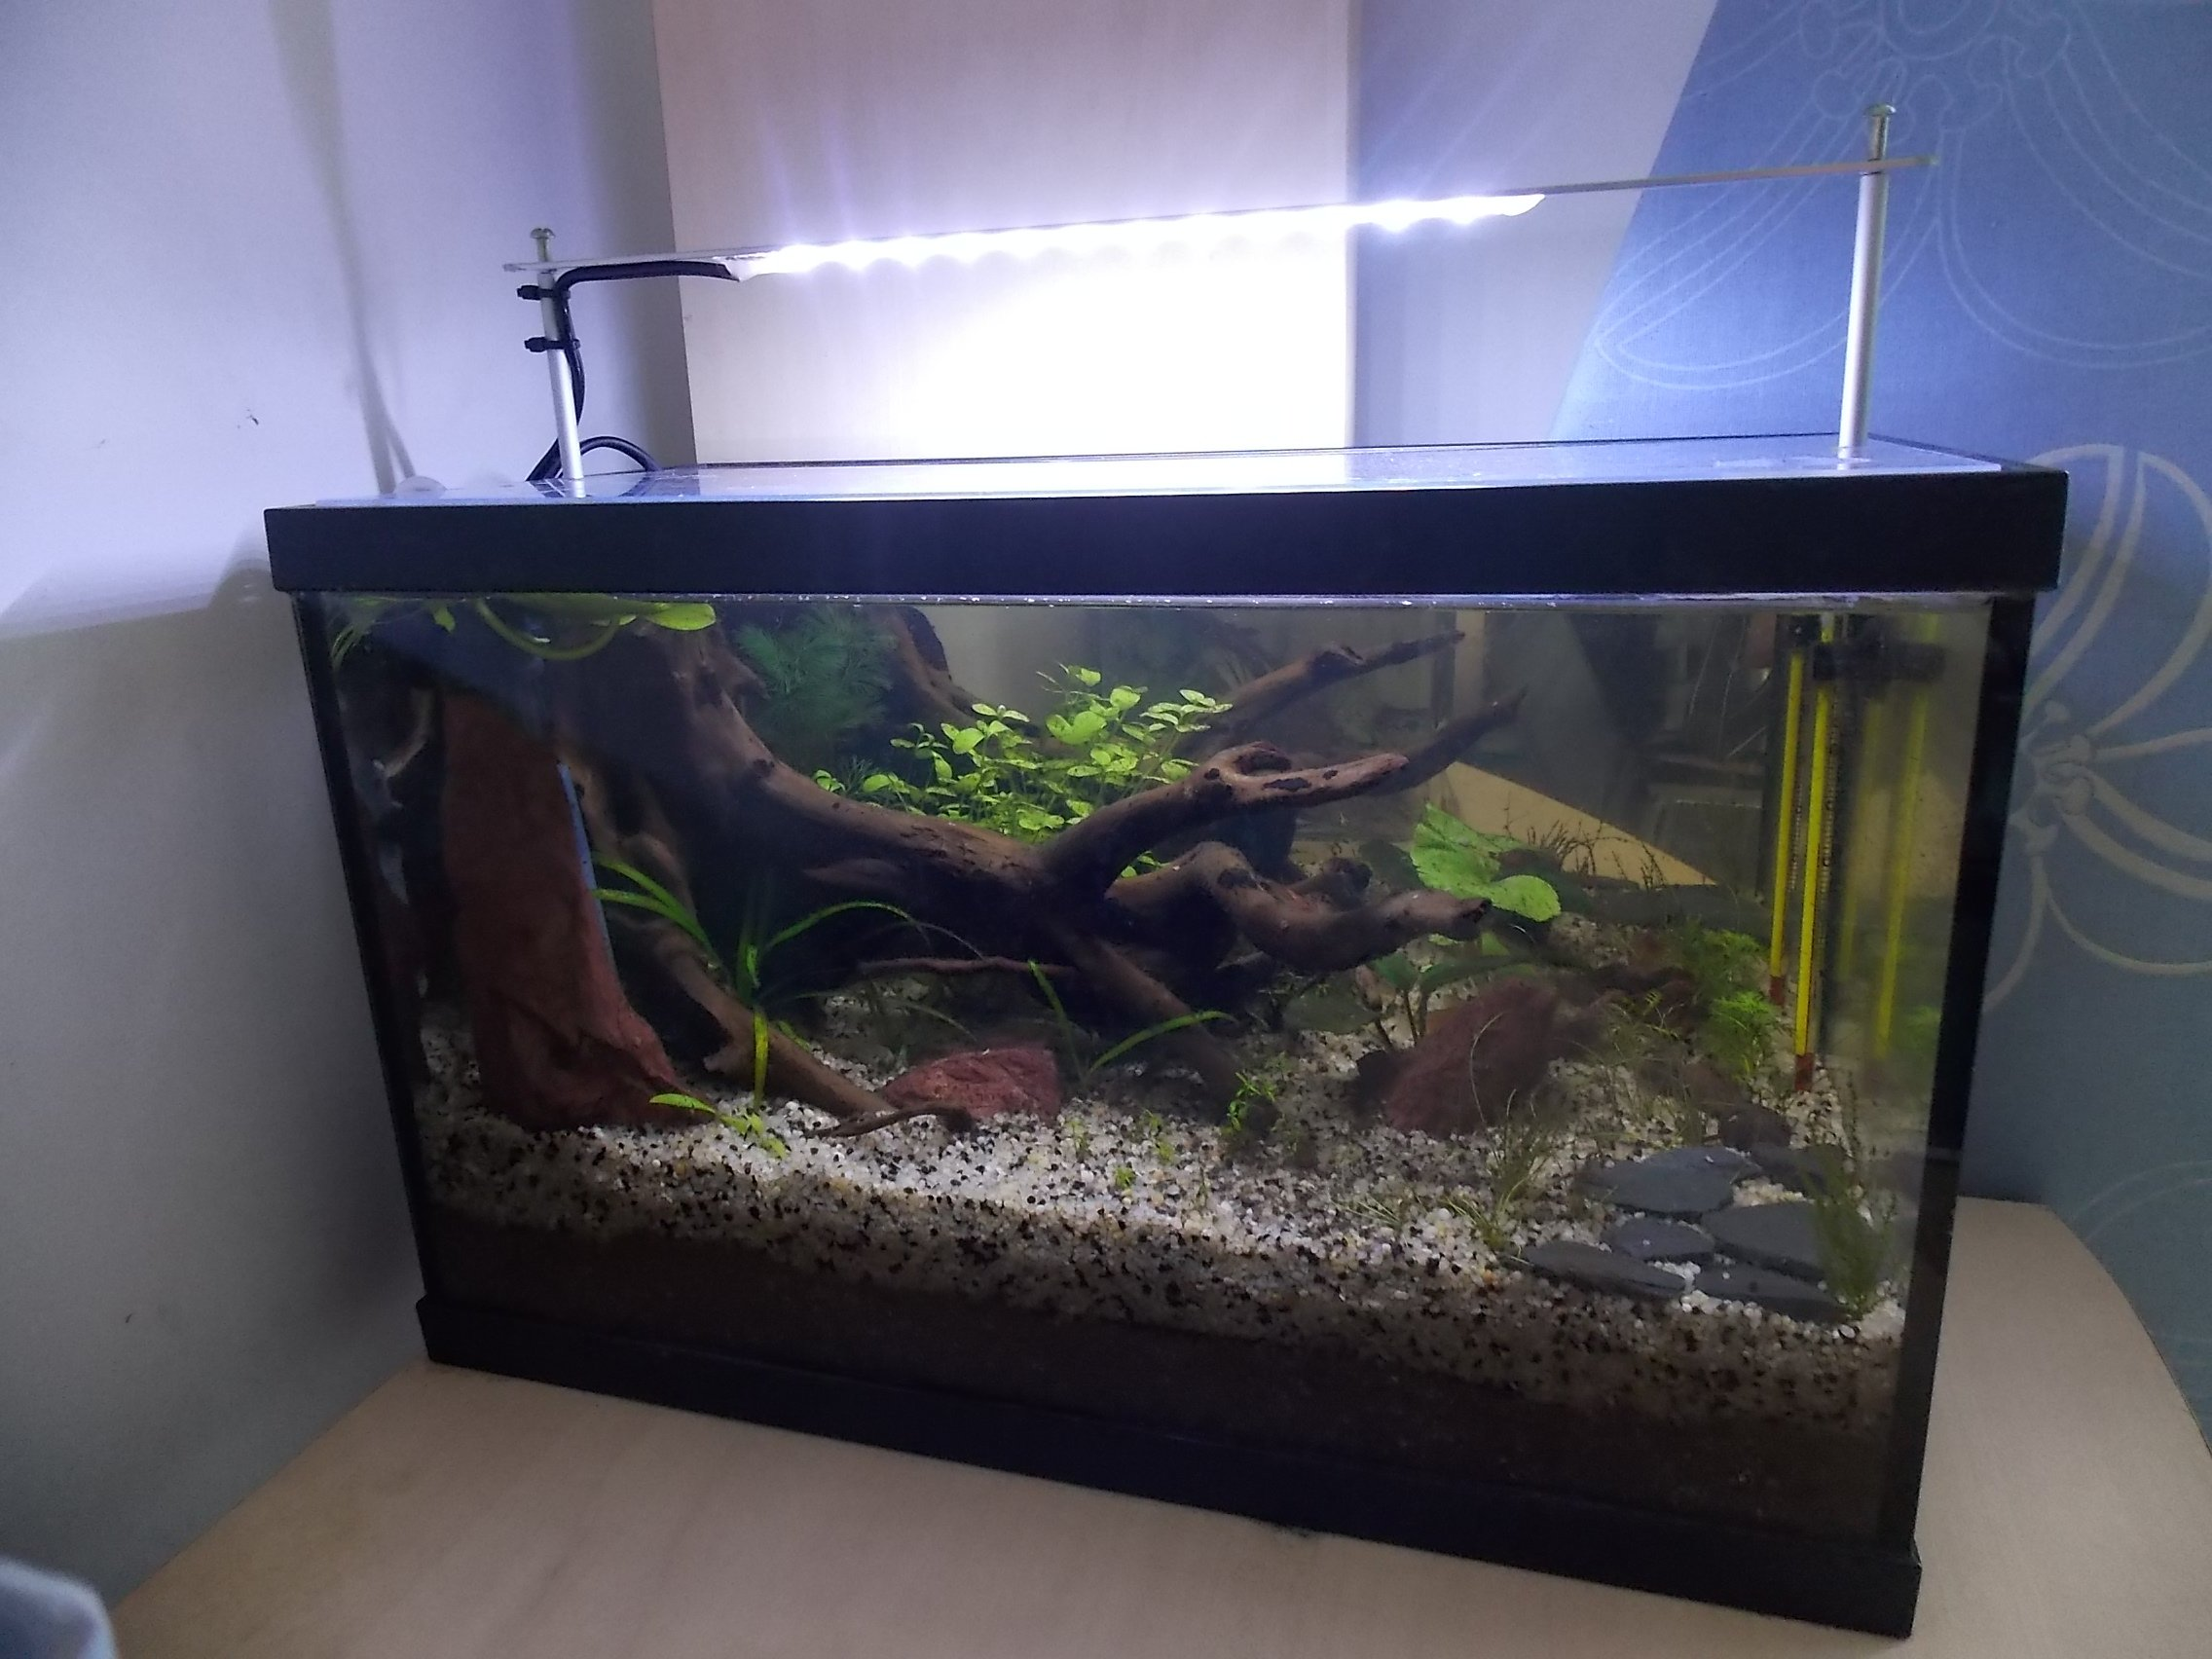 éclairage Led Maison Eclairage Led Maison Aquarium Ventana Blog